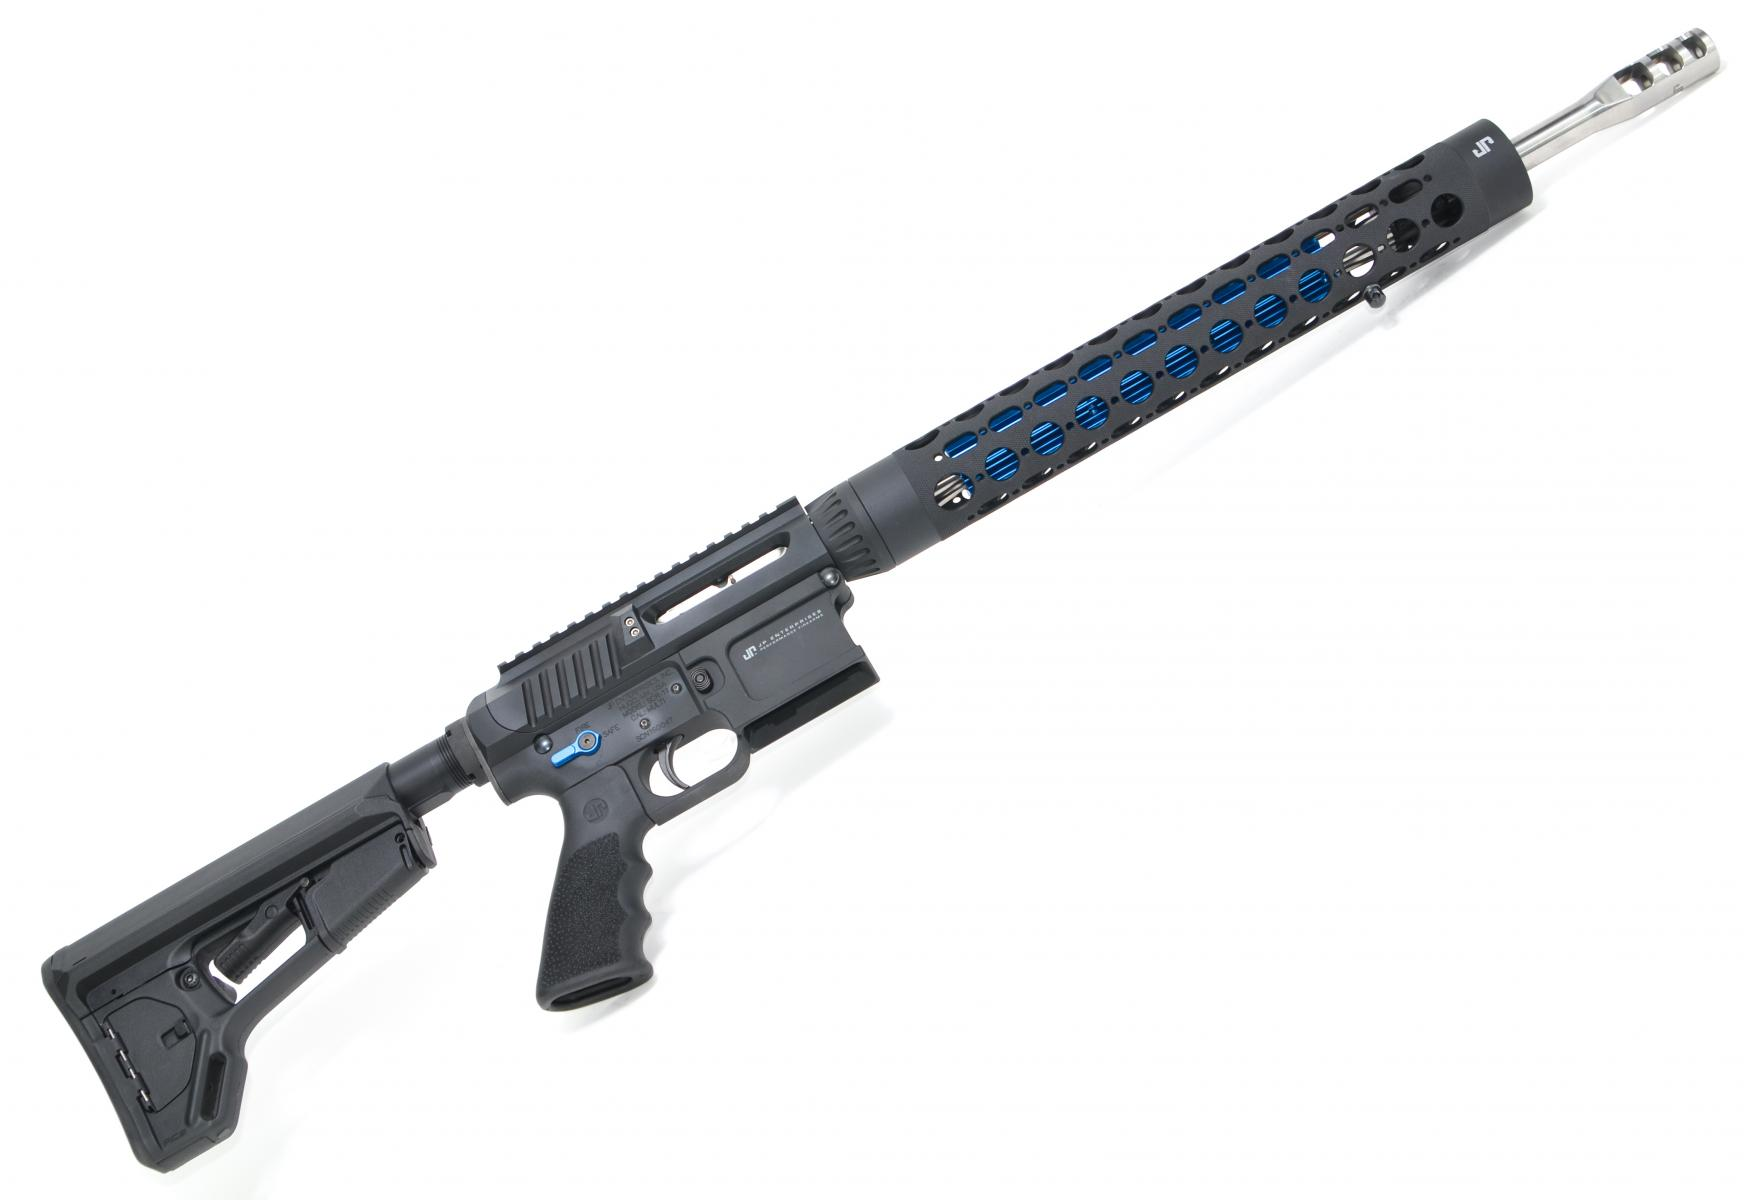 "JP SCR-11 |.223 Wylde 18"" 1:8 Twist JP Supermatch Barrel, Billet Upper/Lower w/ Side Charge System, Blue Thermal Dissipator, Silent Captured Recoil Spring, Low Mass BCG, ACS-L Stock"